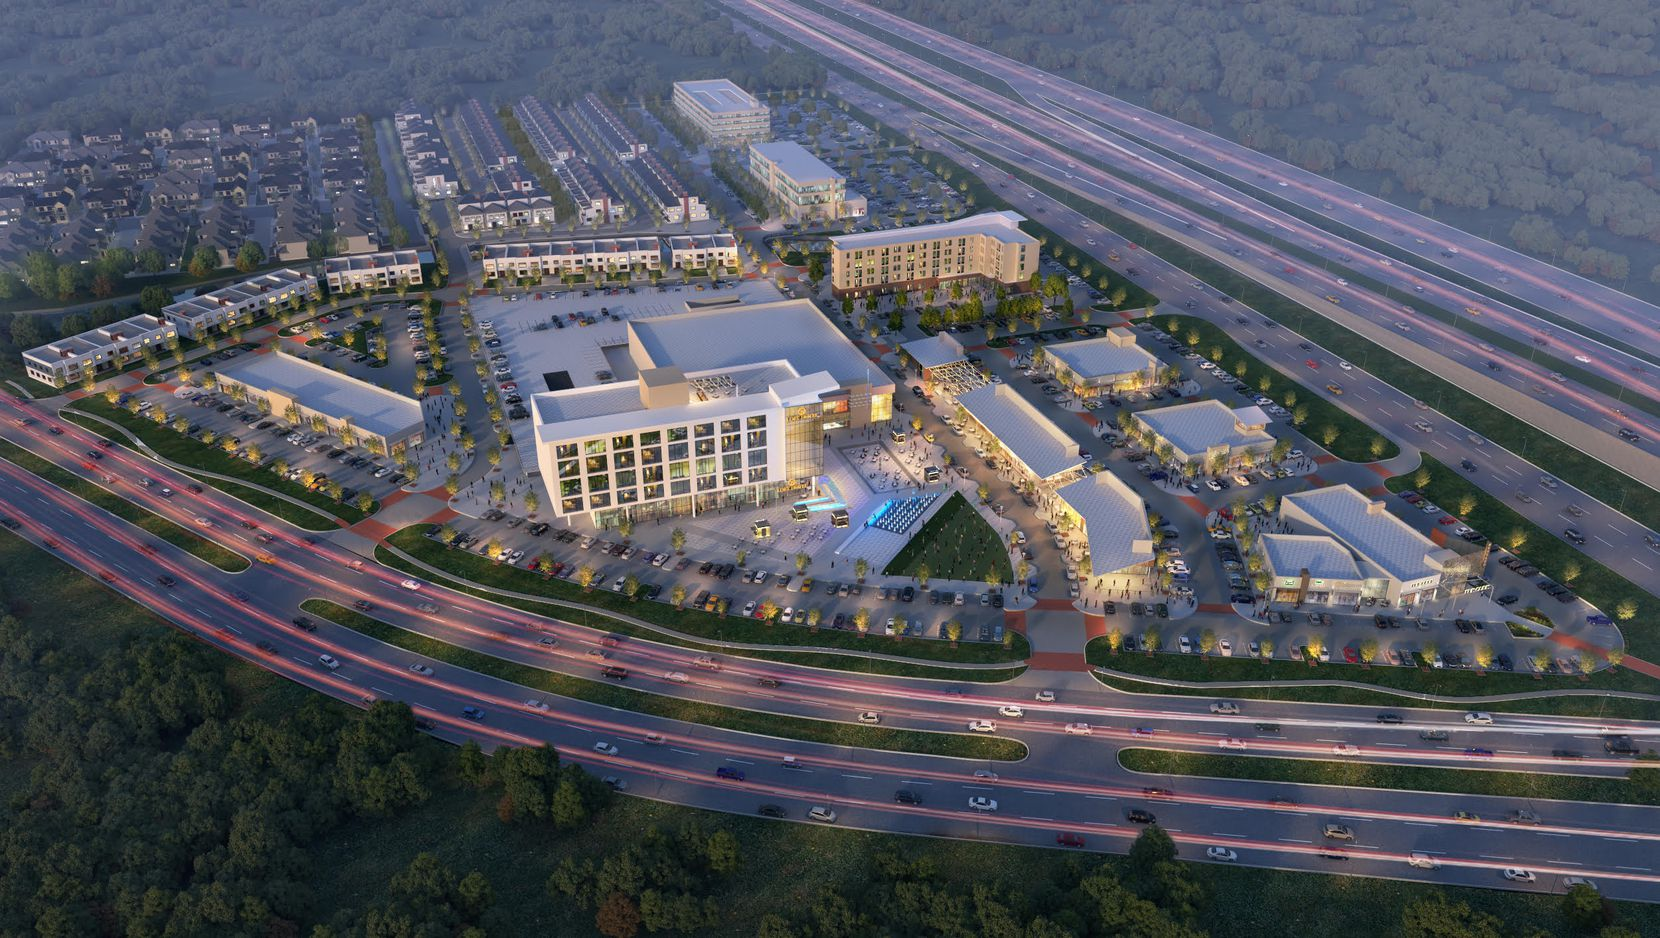 The Mustang Square development is on State Highway 121 in Plano.